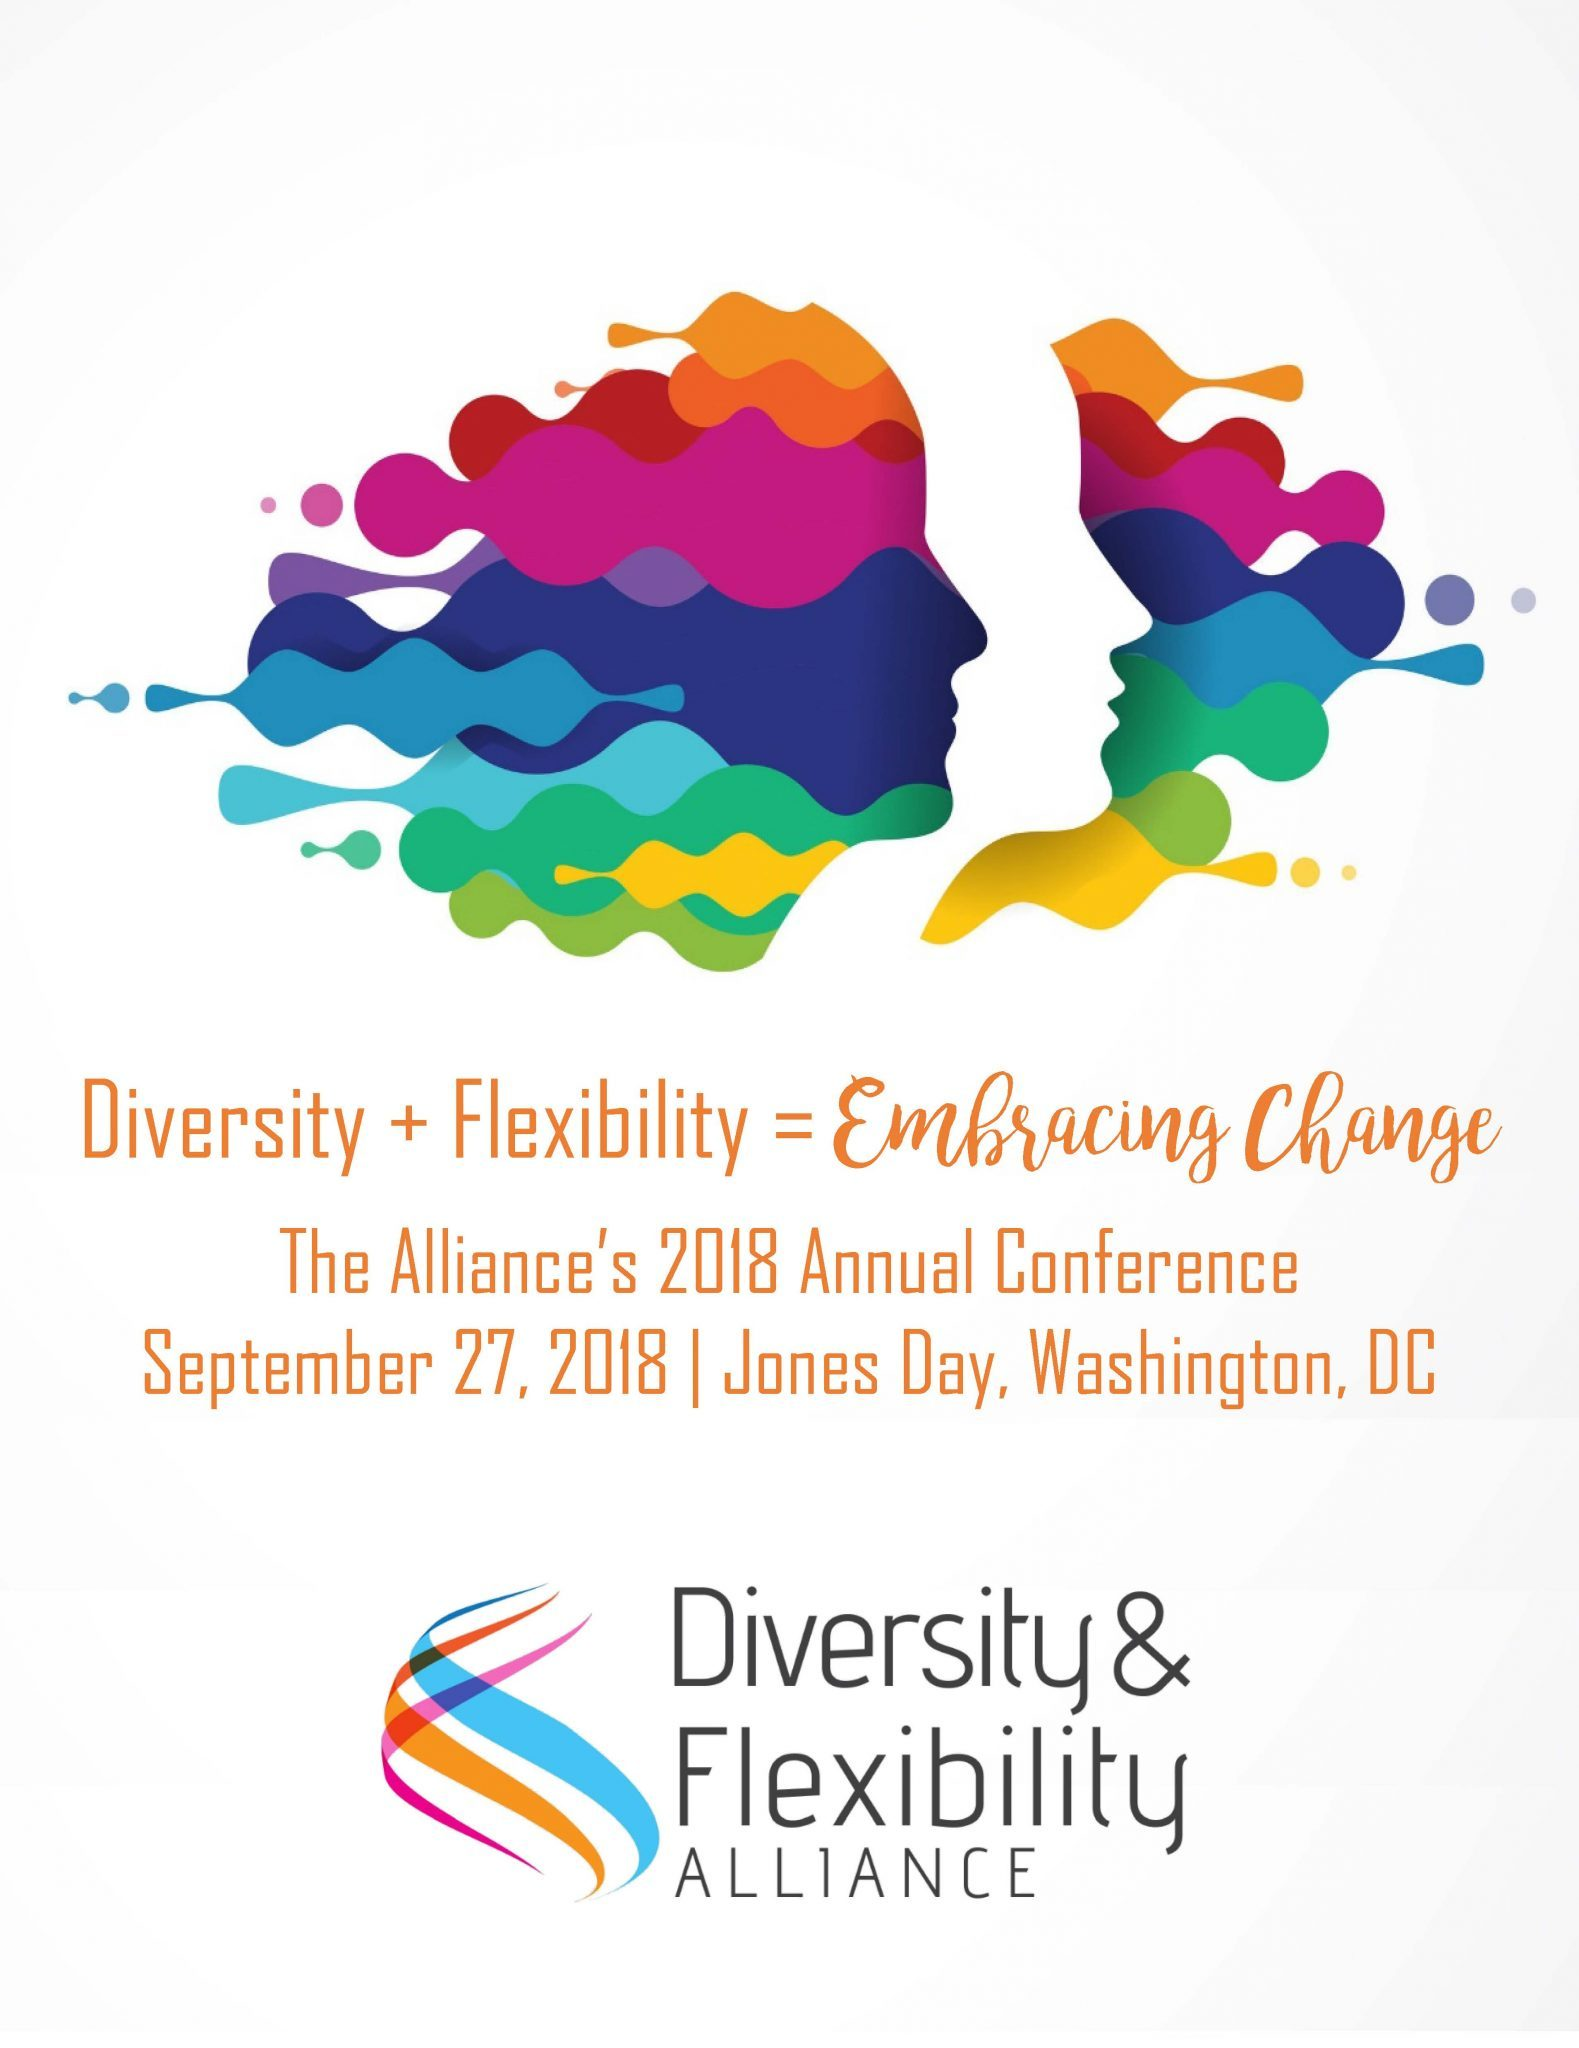 2018 Annual Conference | Diversity + Flexibility = Embracing